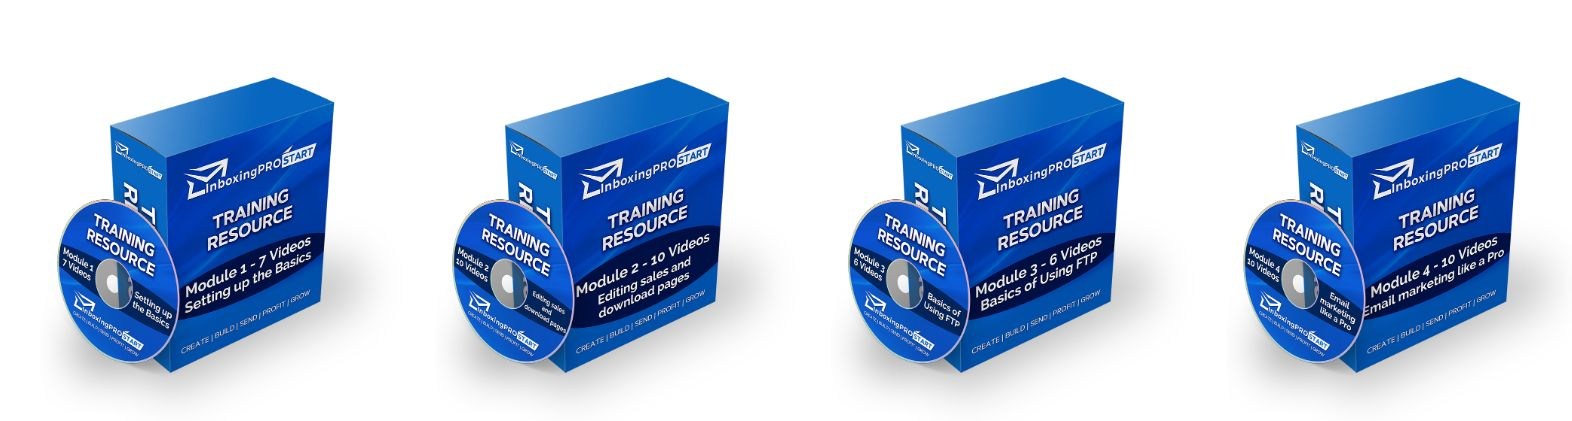 Email-Marketing-Power-Pack-Review-Training